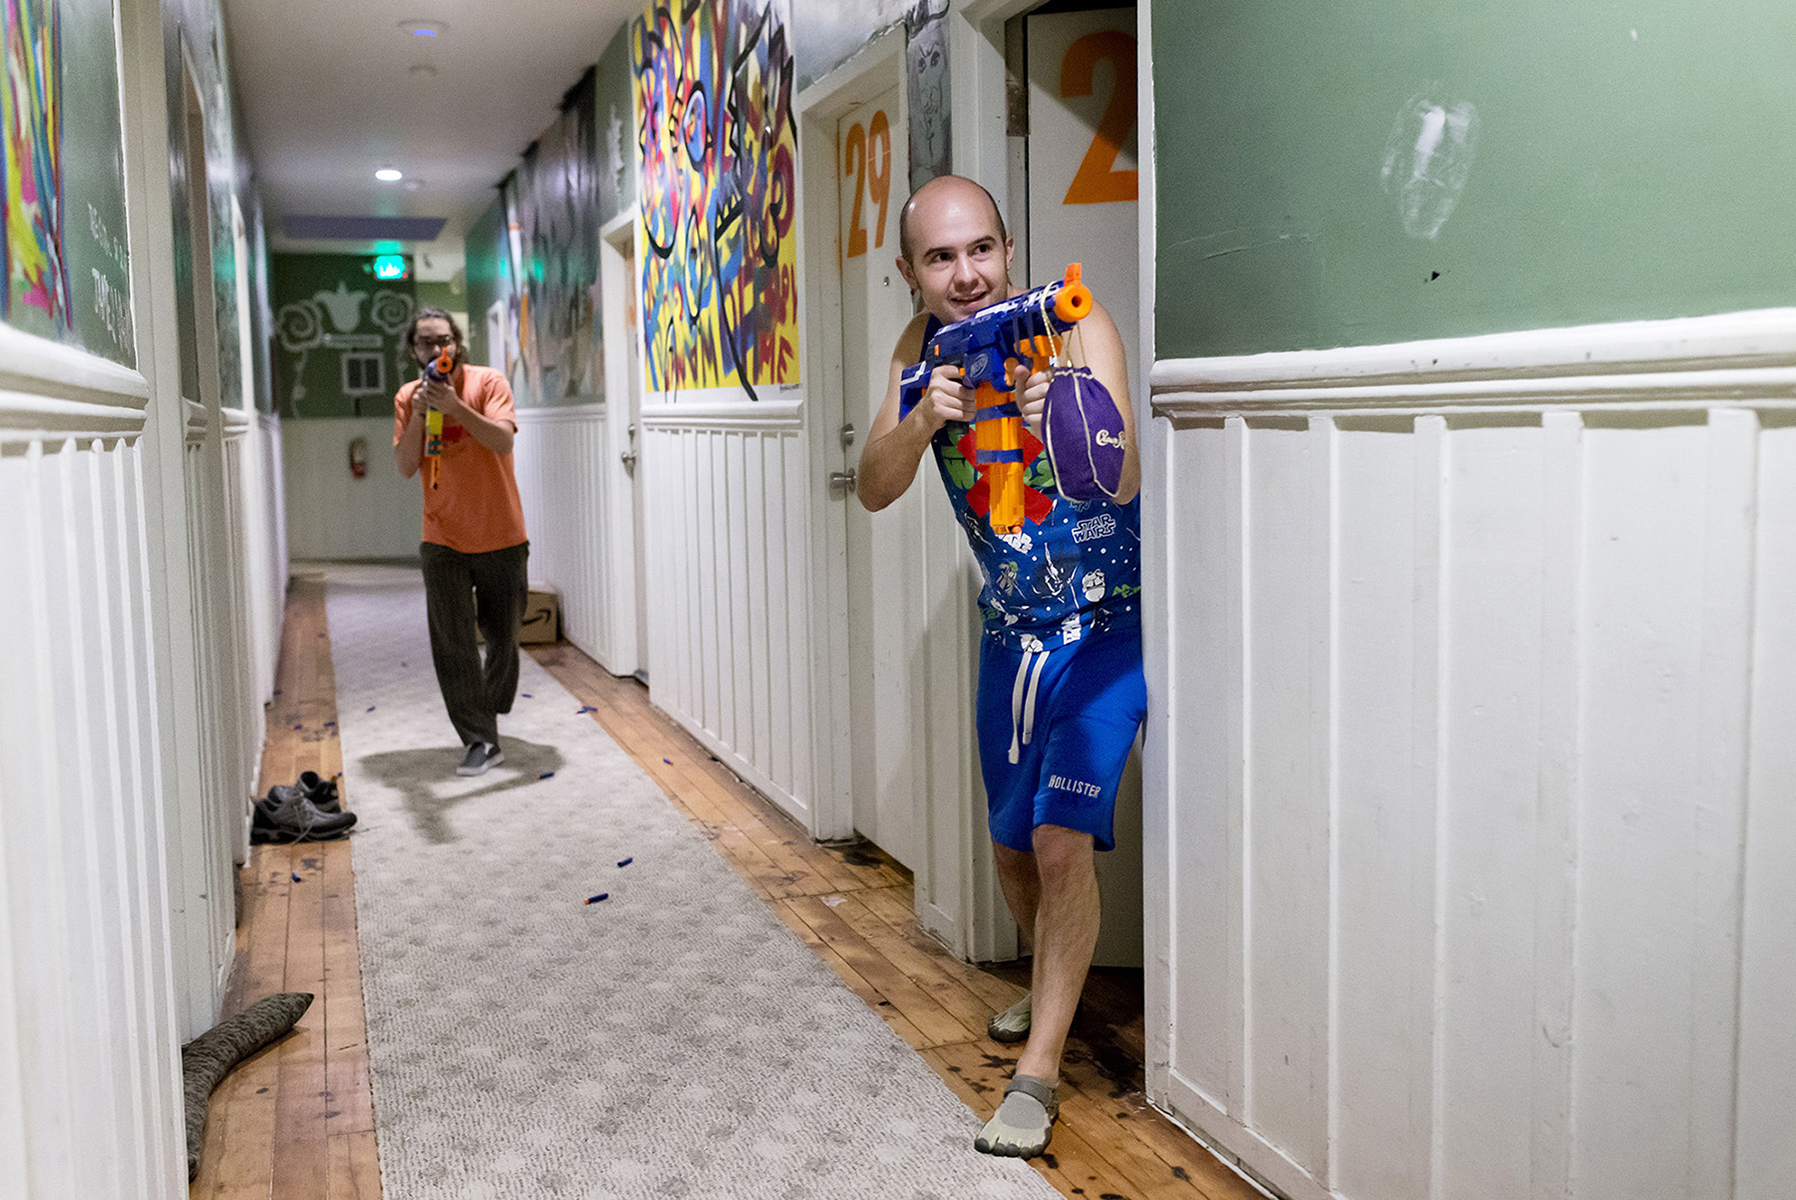 Andrew Ward, right, and Chris Cassano battle their fellow housemates with Nerf guns during an organized Nerf gun battle at 20 Mission, a co-living house in the Mission District, in San Francisco, California in July 2015. The community is home to around 45 people, many of whom are entrepreneurs. Many of the residents are close friends and impromptu gatherings and more formal parties are commonplace at the community.